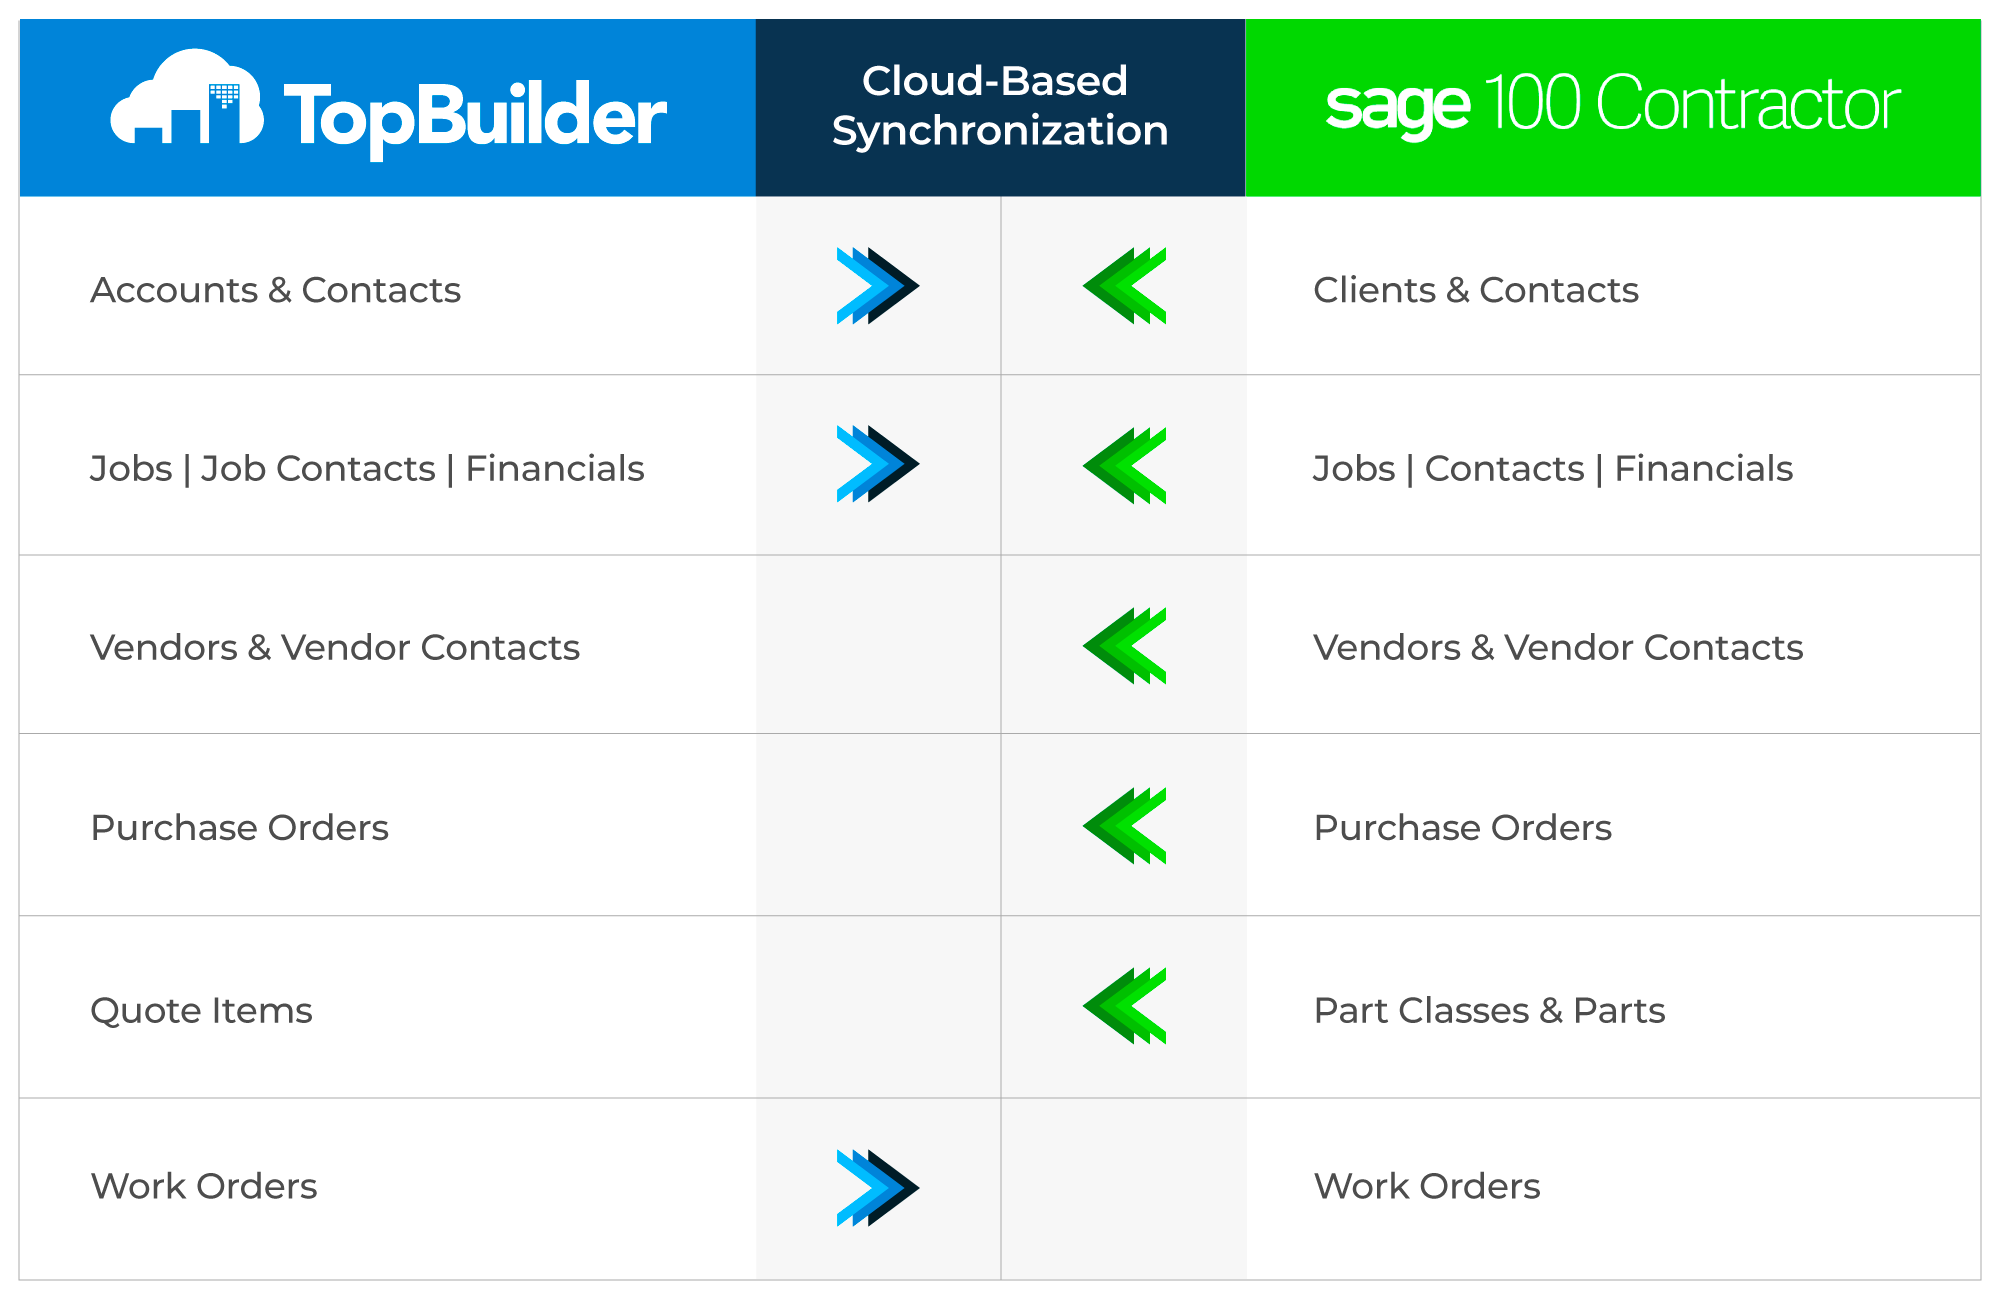 Sage 100 Contractor Integration Chart